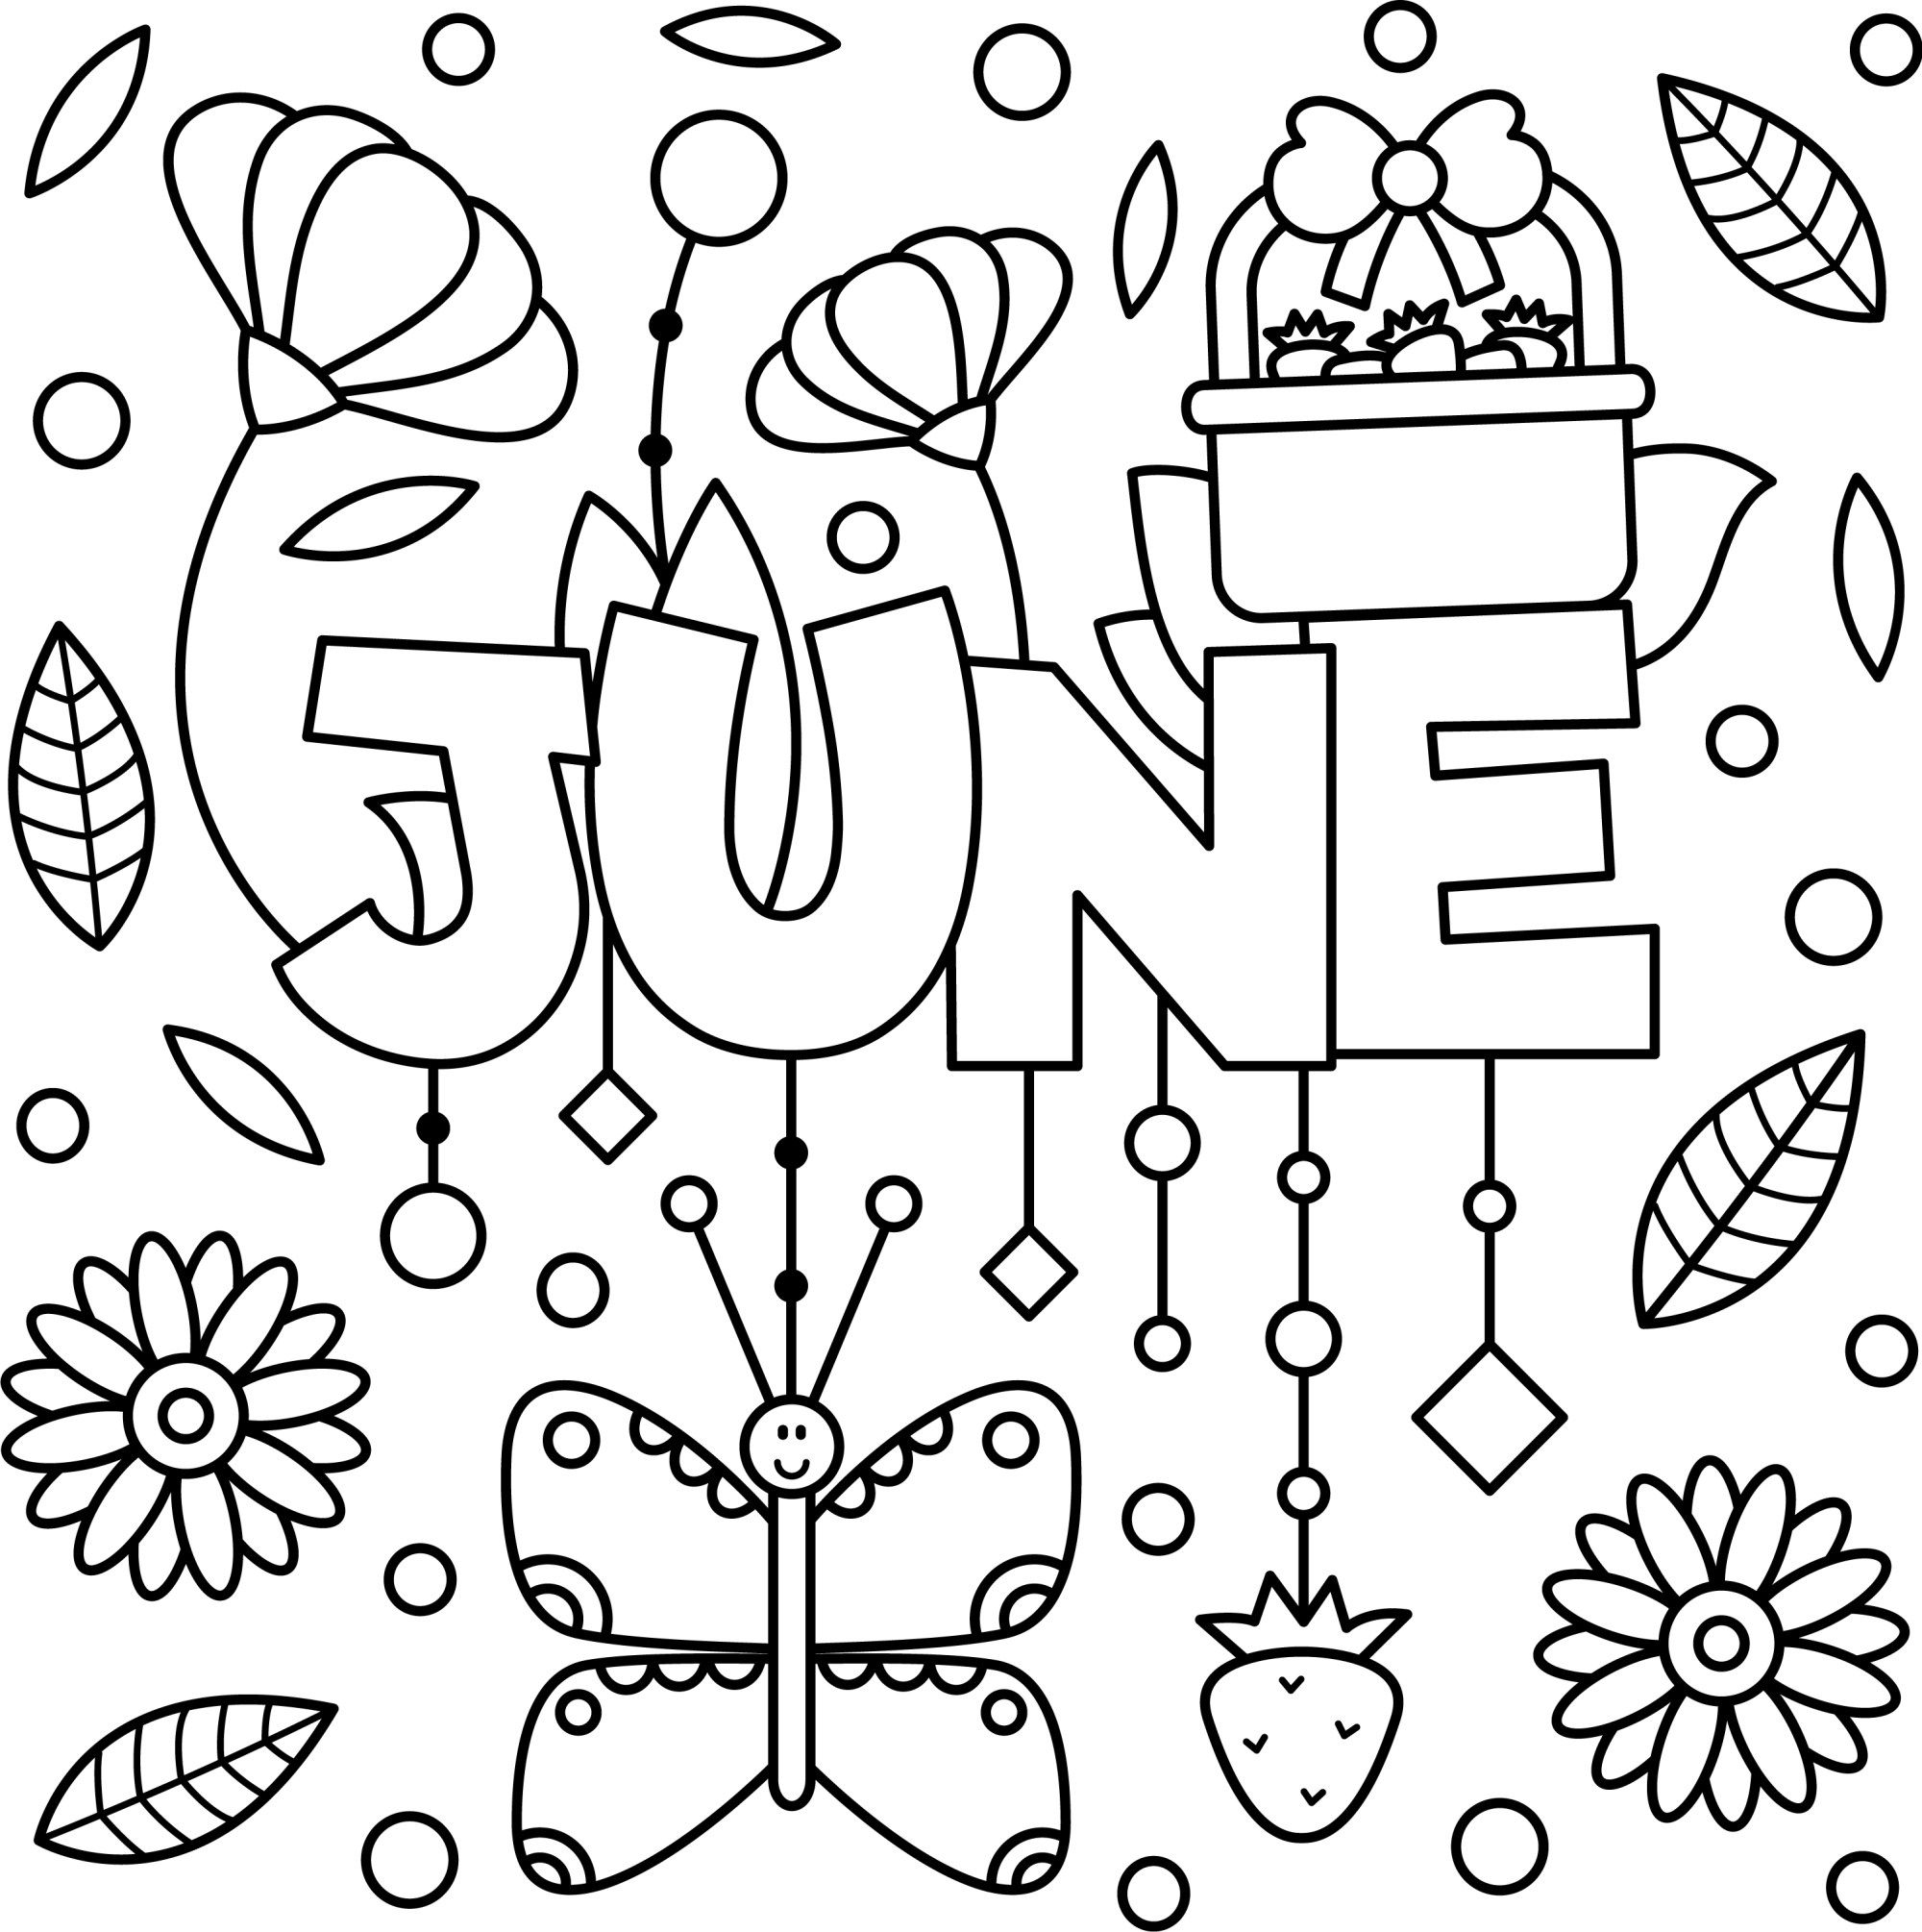 Cheery June Coloring Page Printable Thrifty Mommas Tips Coloring Pages Quote Coloring Pages Summer Coloring Pages